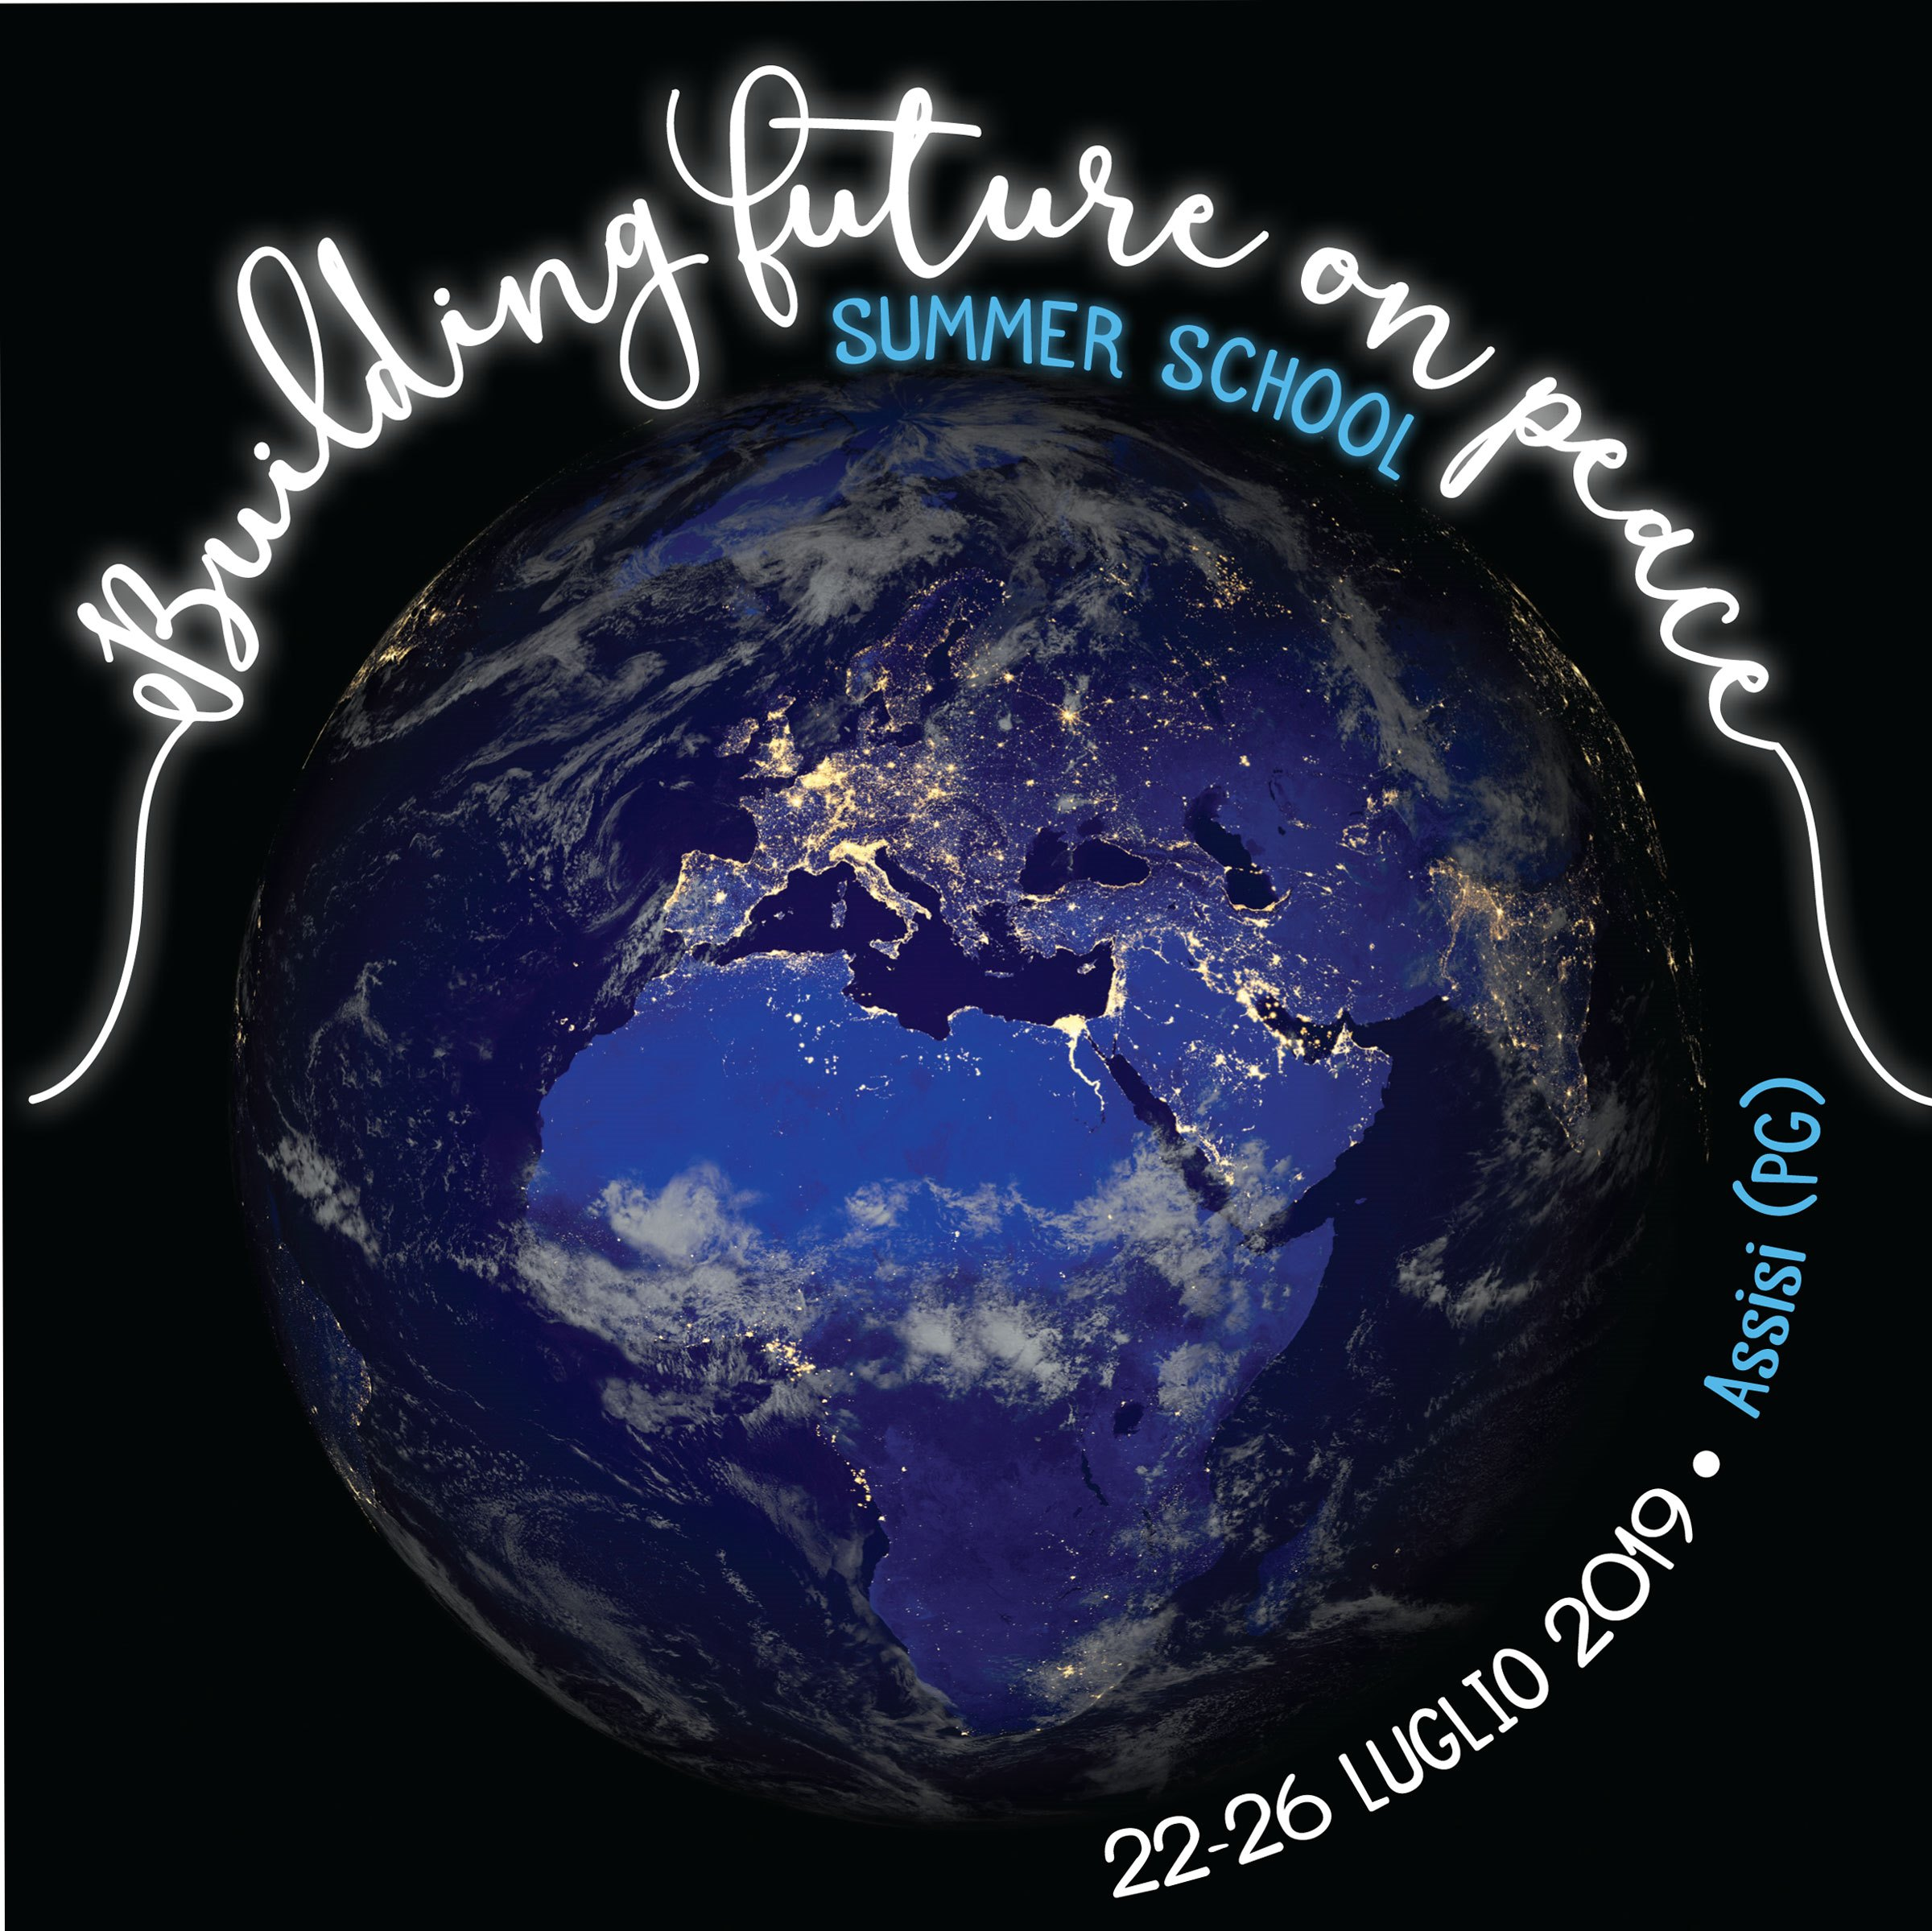 "Logo Summer School ""Building future on peace"", 22 - 26 luglio 2019, Assisi"